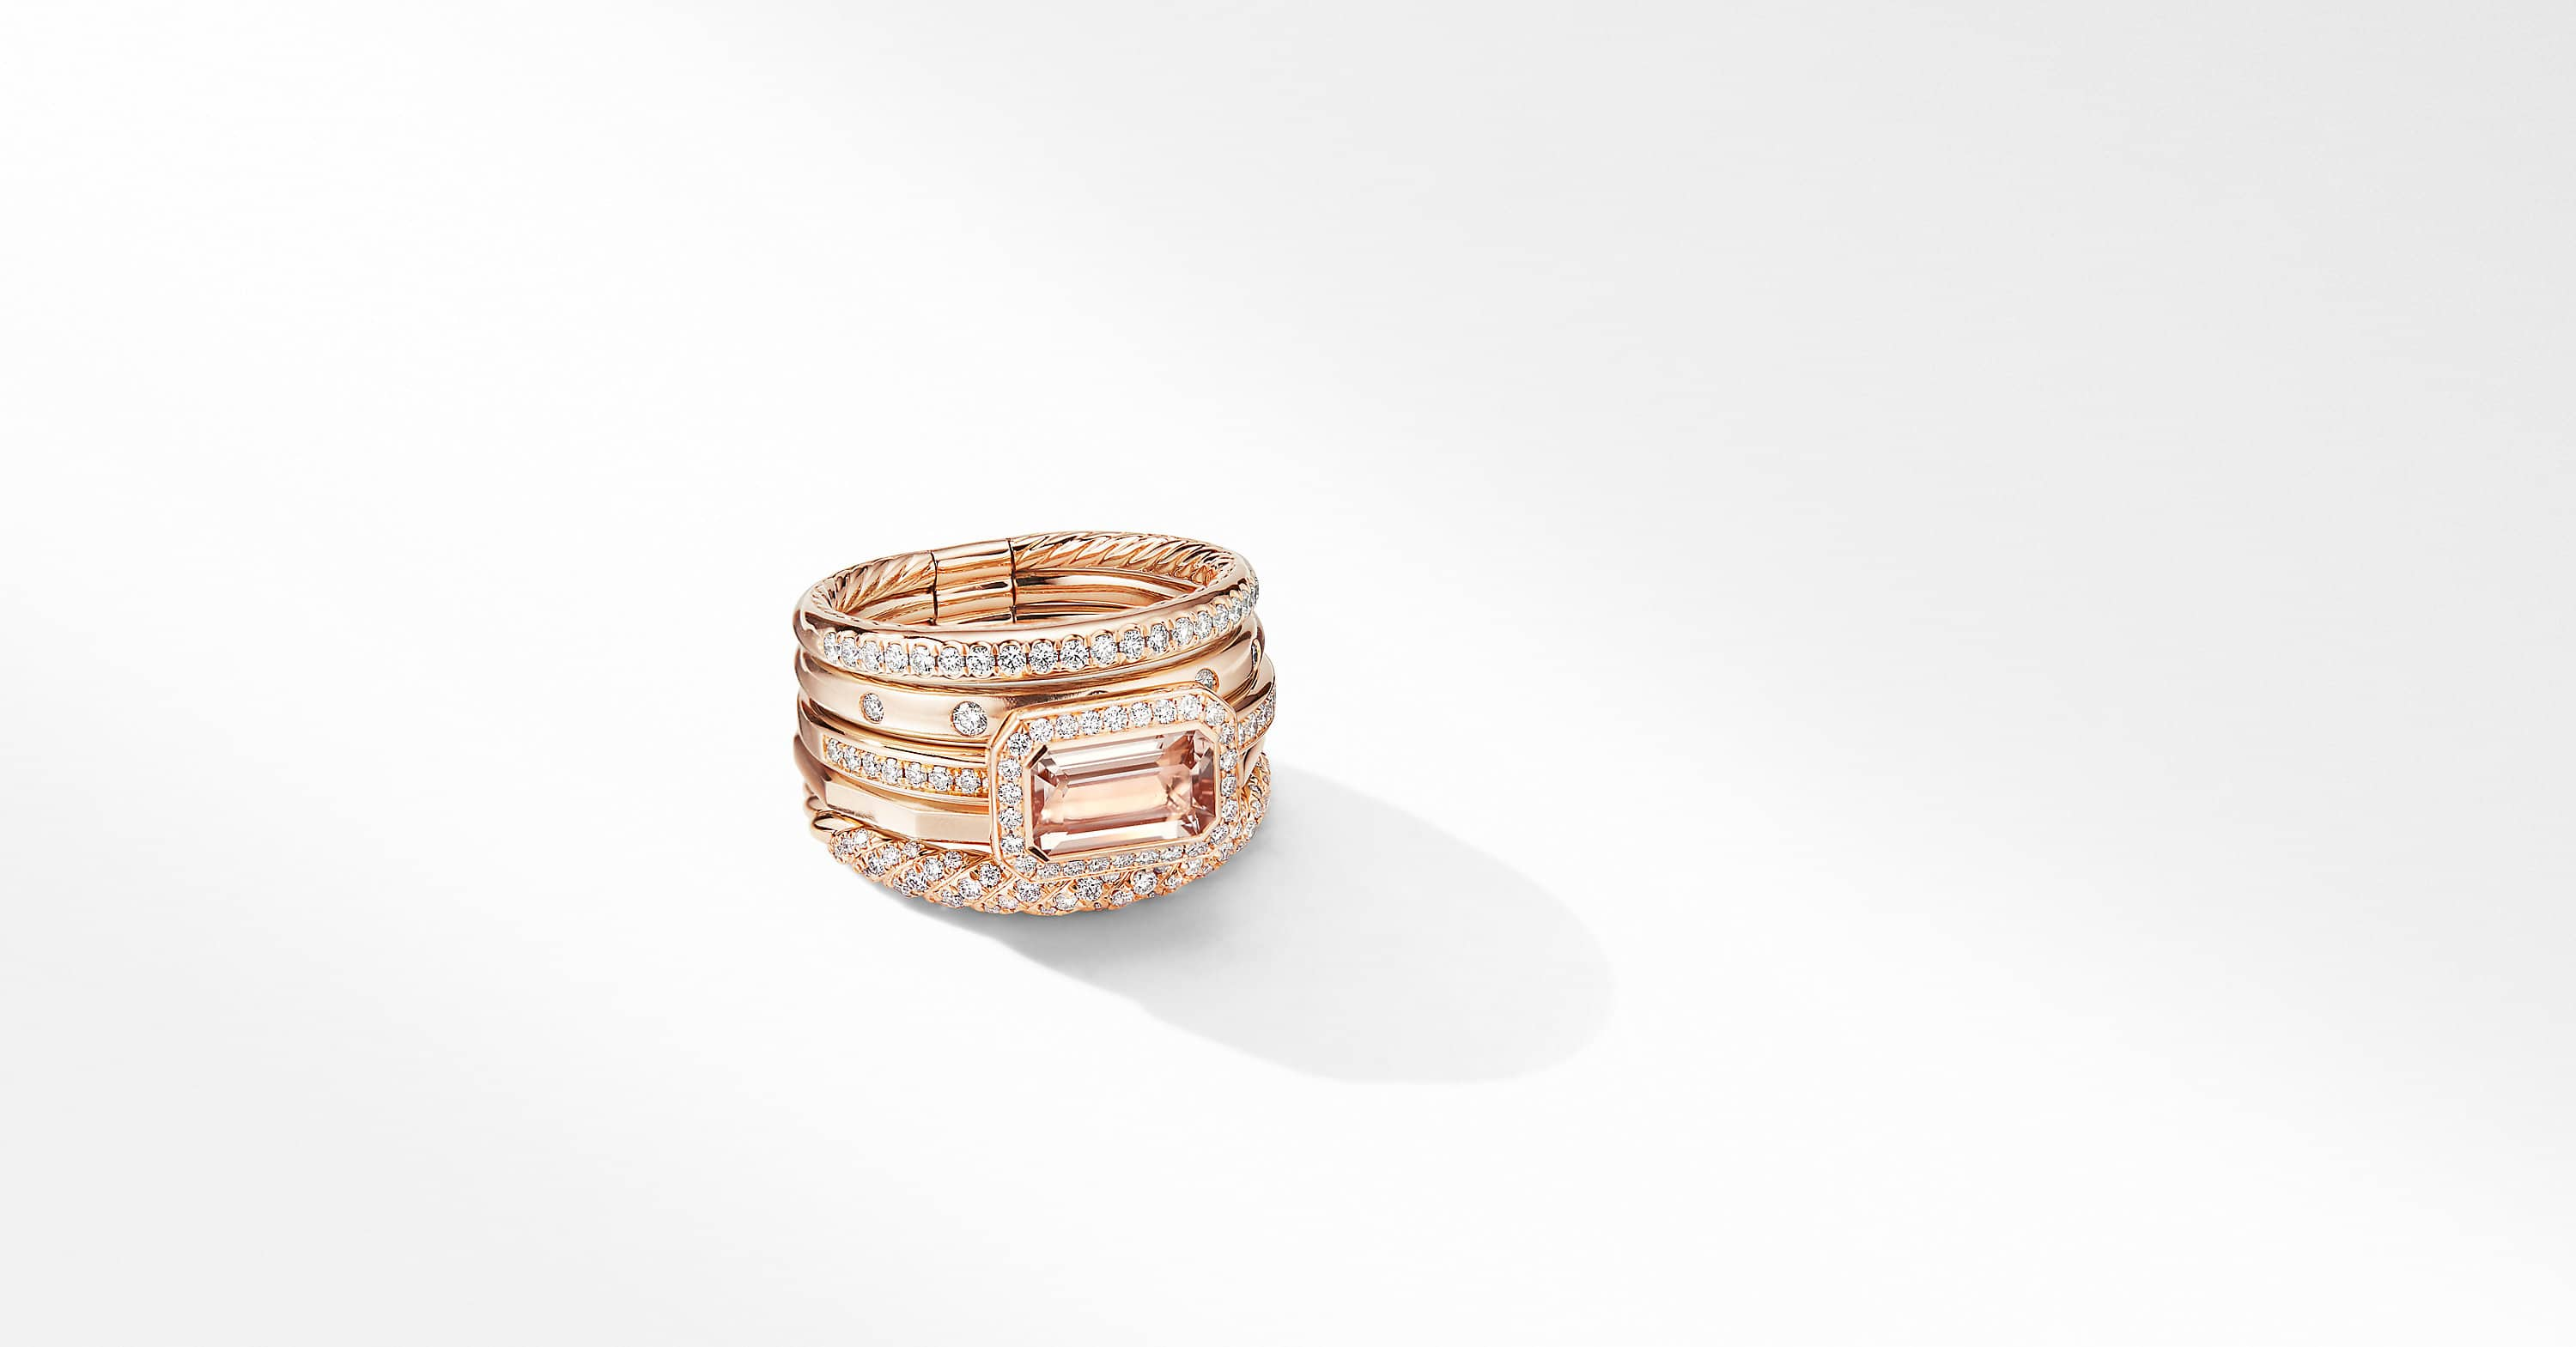 Stax Statement Ring in 18K Rose Gold with Diamonds